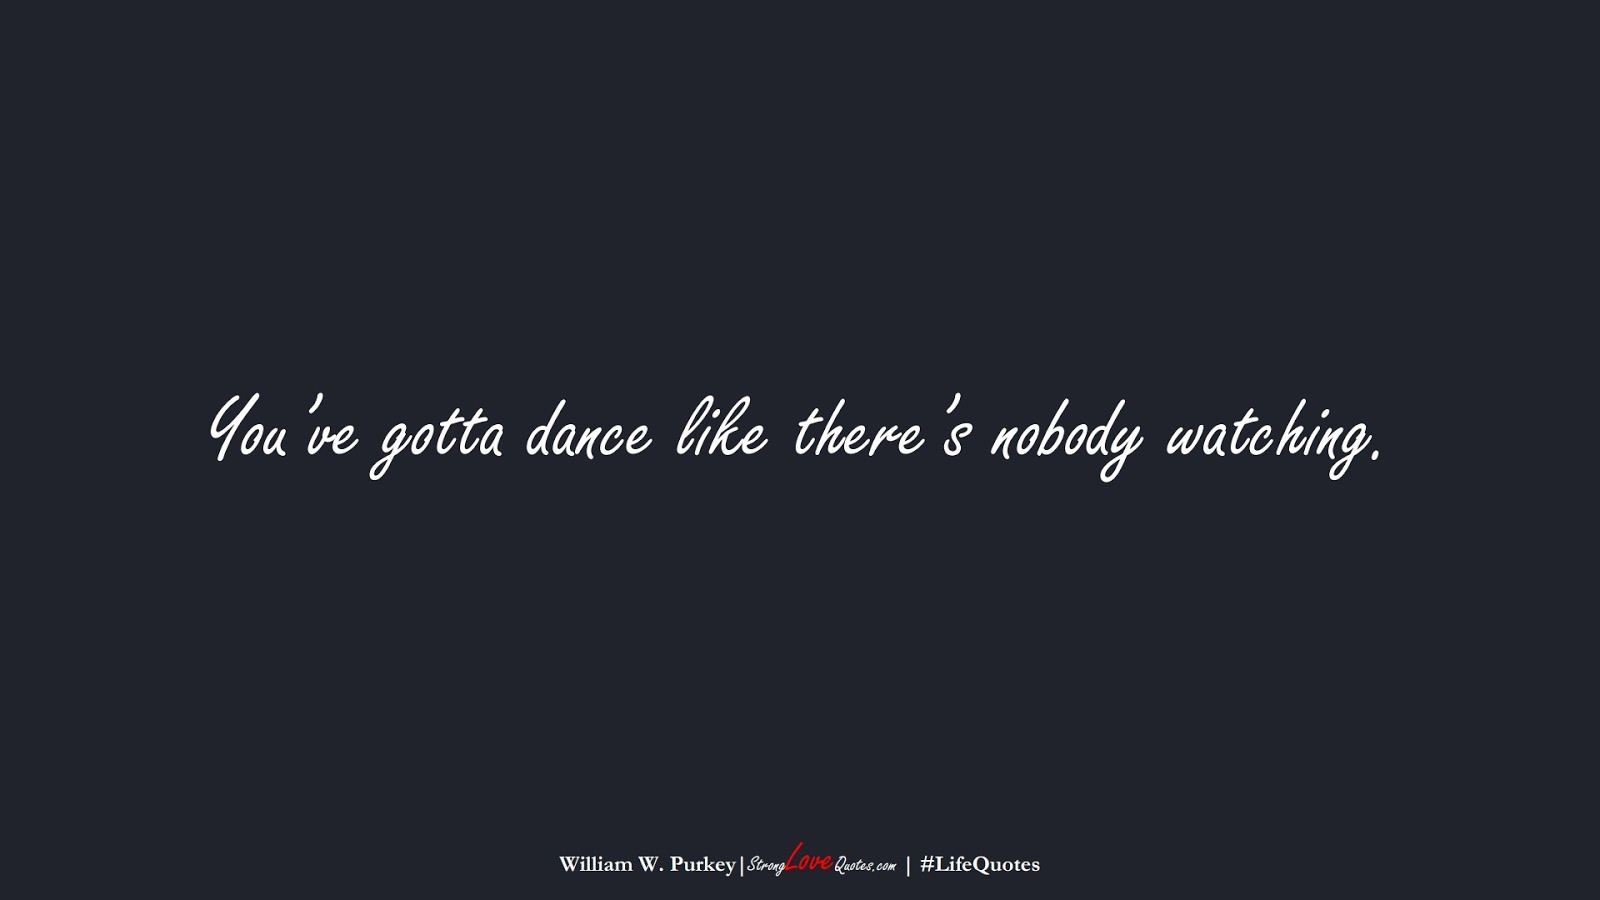 You've gotta dance like there's nobody watching. (William W. Purkey);  #LifeQuotes